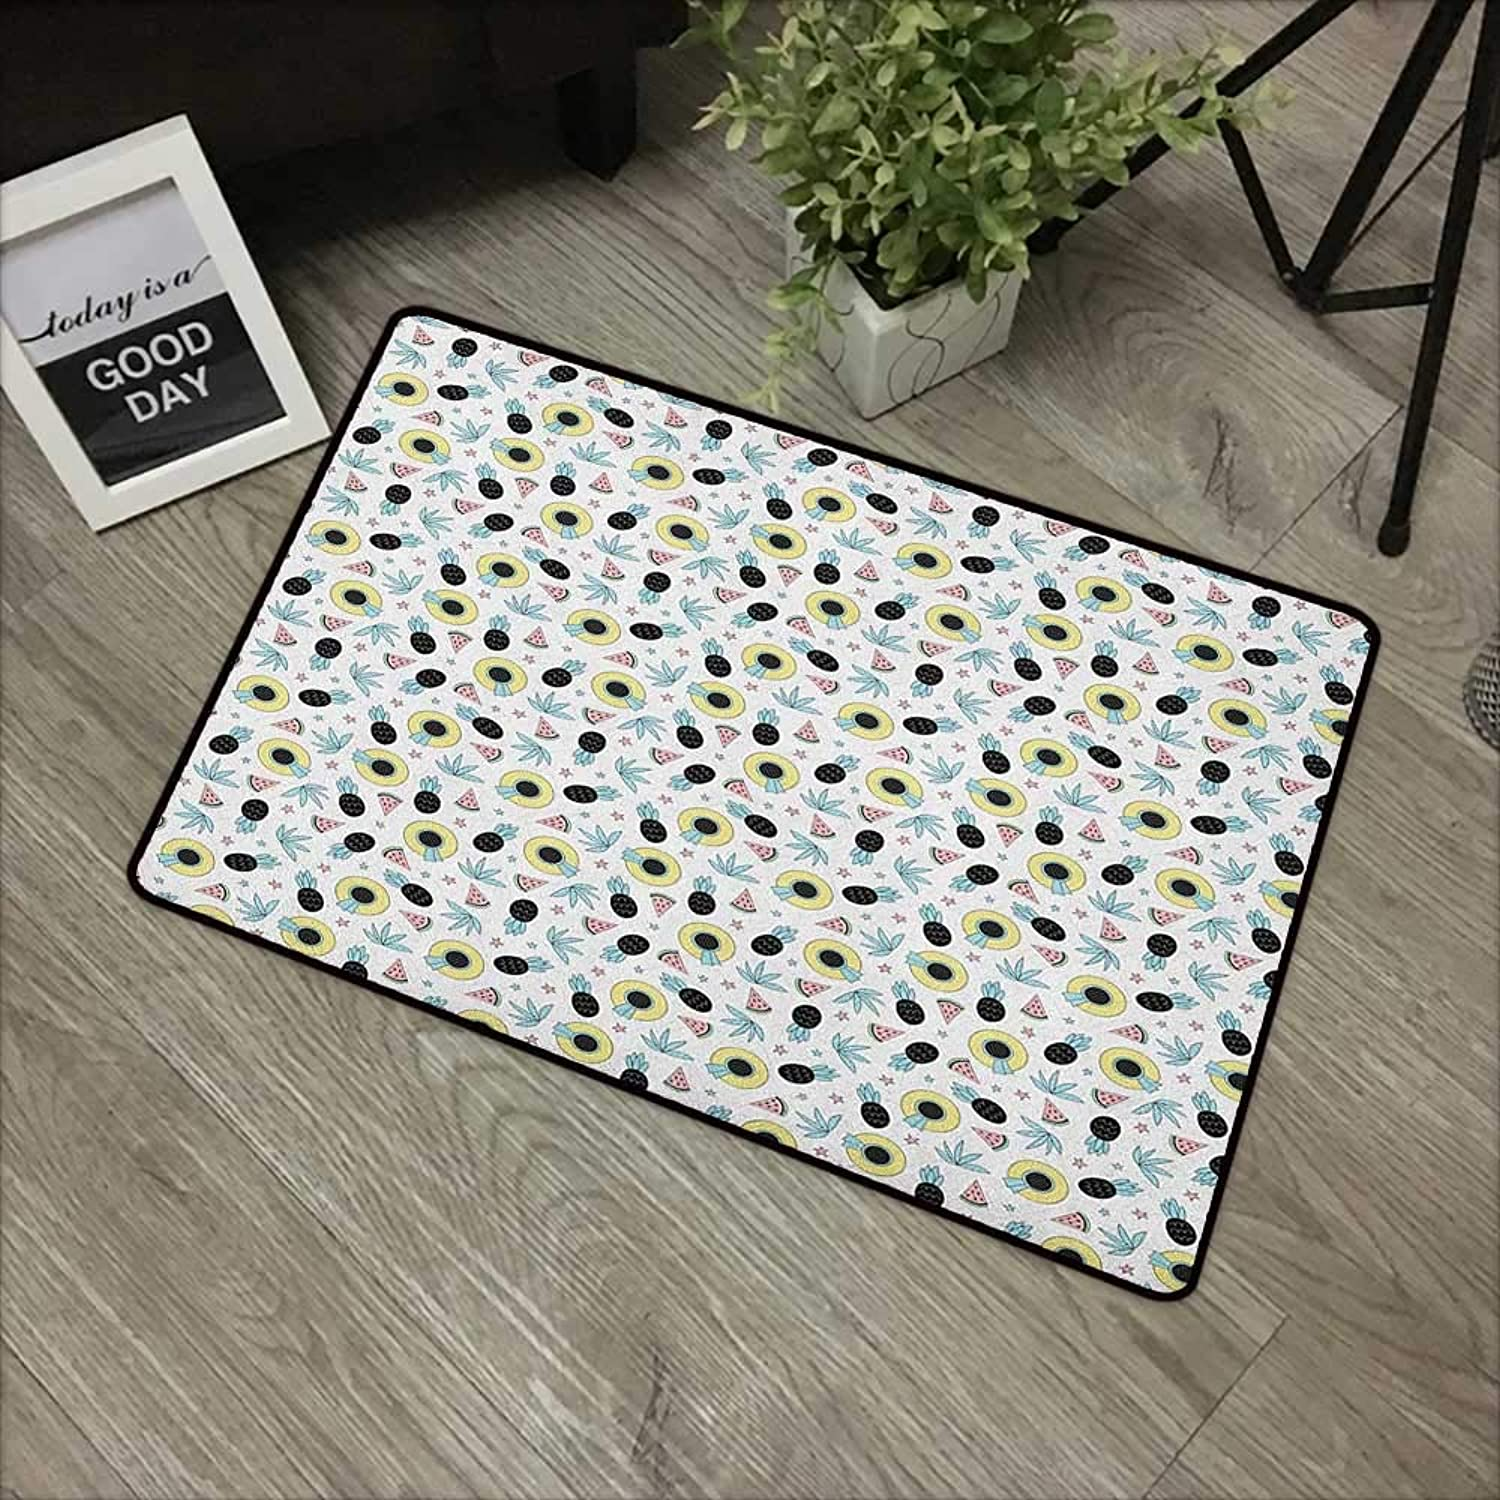 Bathroom anti-slip door mat W35 x L59 INCH Summer,Hand Drawn Style Pattern with Women`s Beach Hats Pineapples Watermelons and Stars, Multicolor Non-slip, with non-slip backing,Non-slip Door Mat Carpet